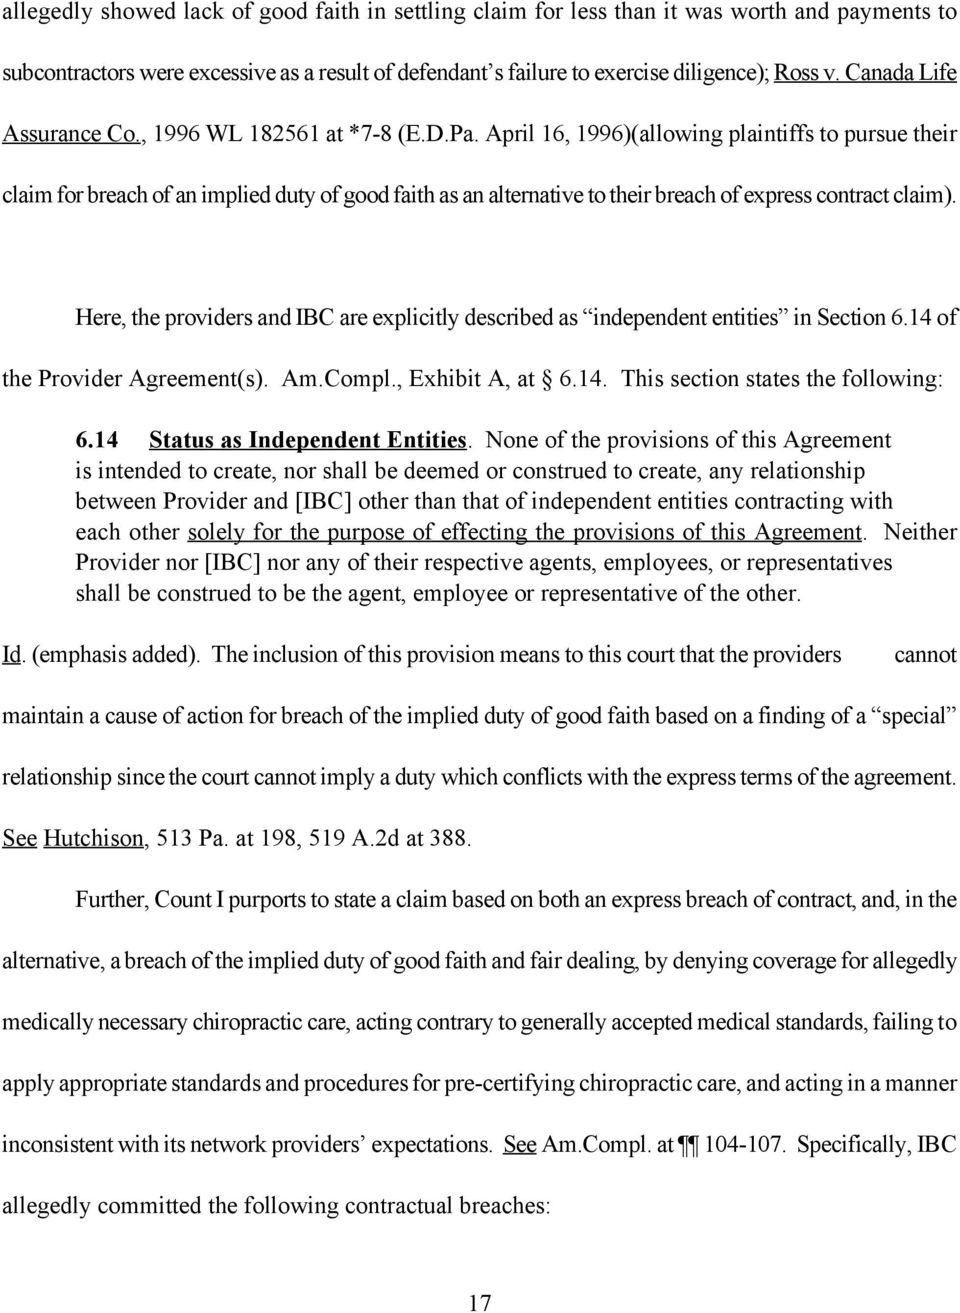 ORDER Objections To Plaintiffs First Amended Plaint